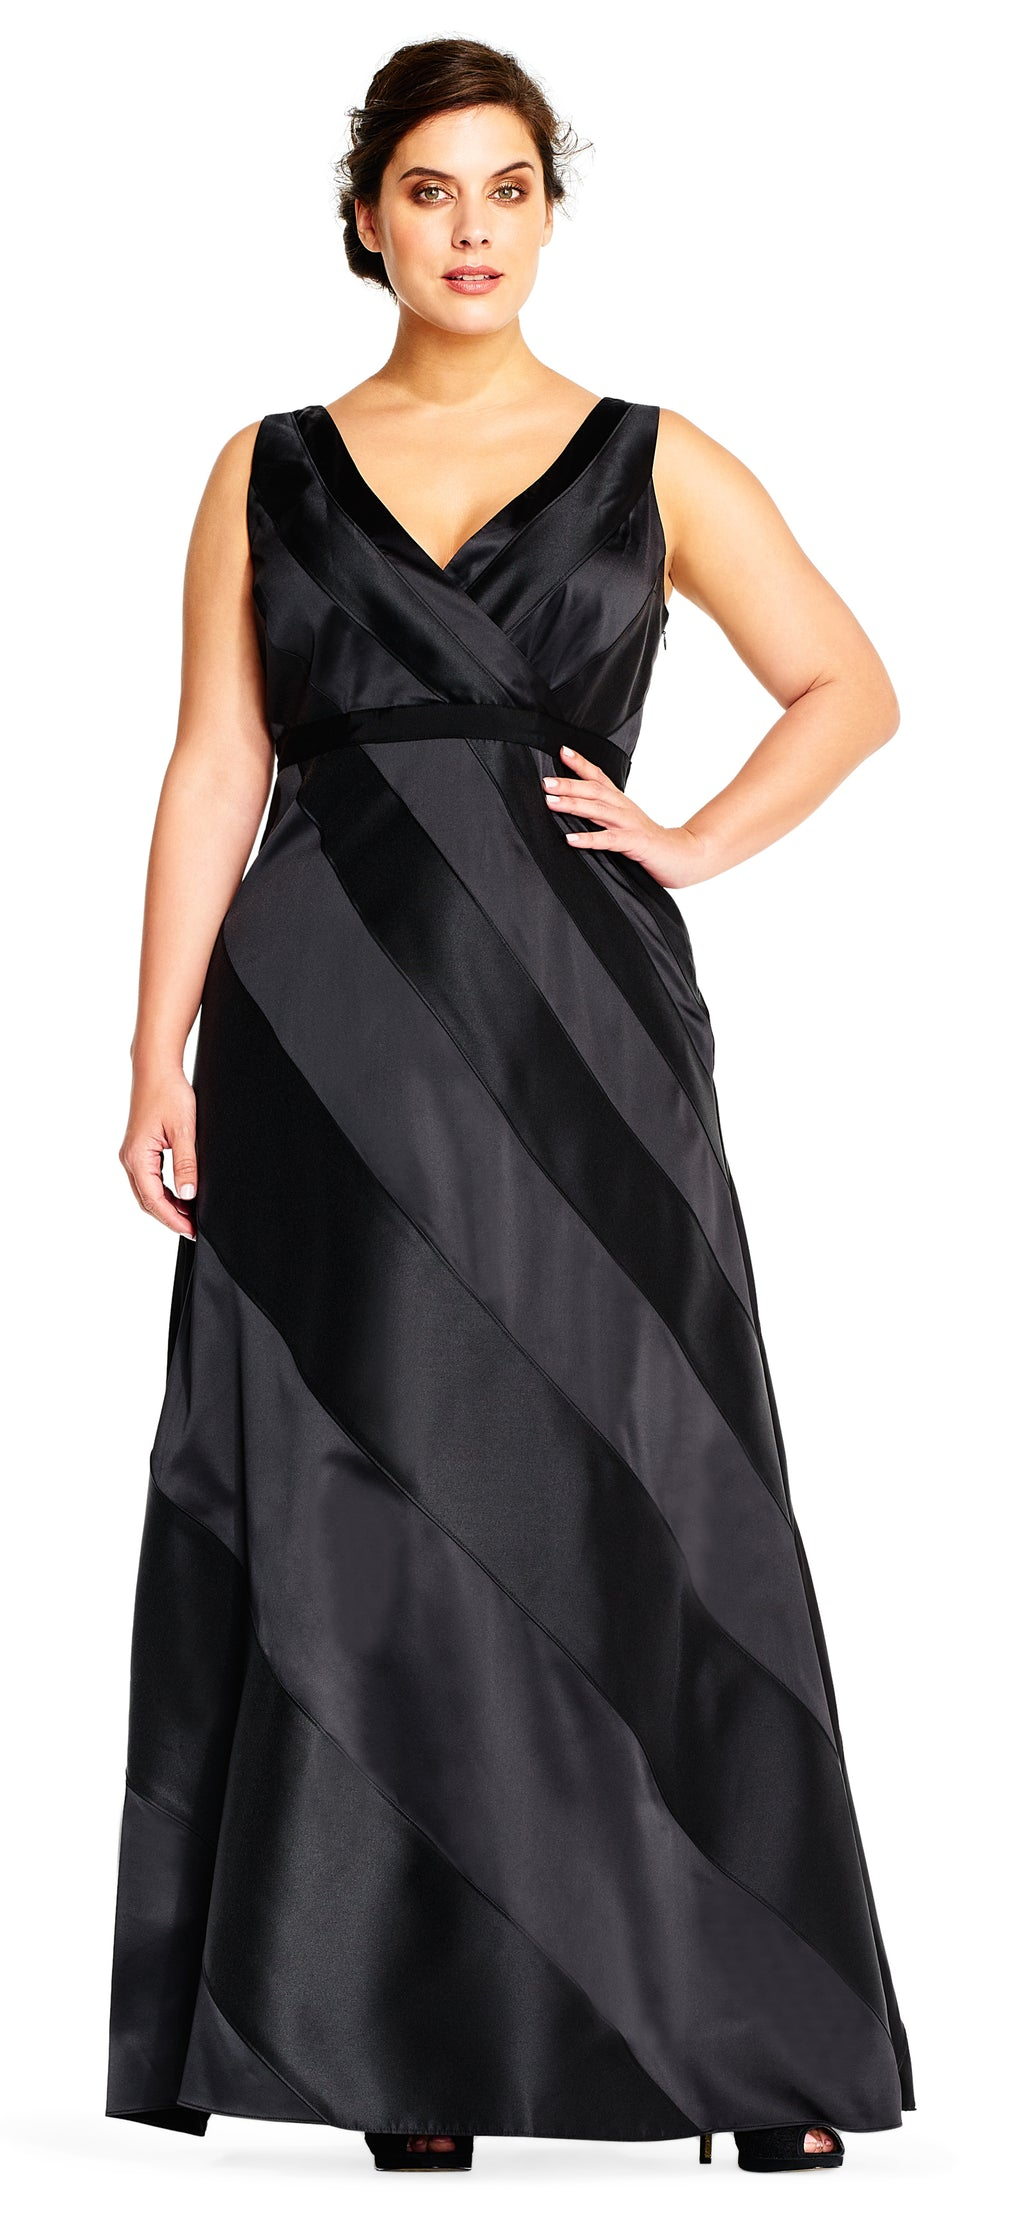 FOR SALE Black Maxi Sleeveless V-Neck Dress by Adrianna Papell, Size 14